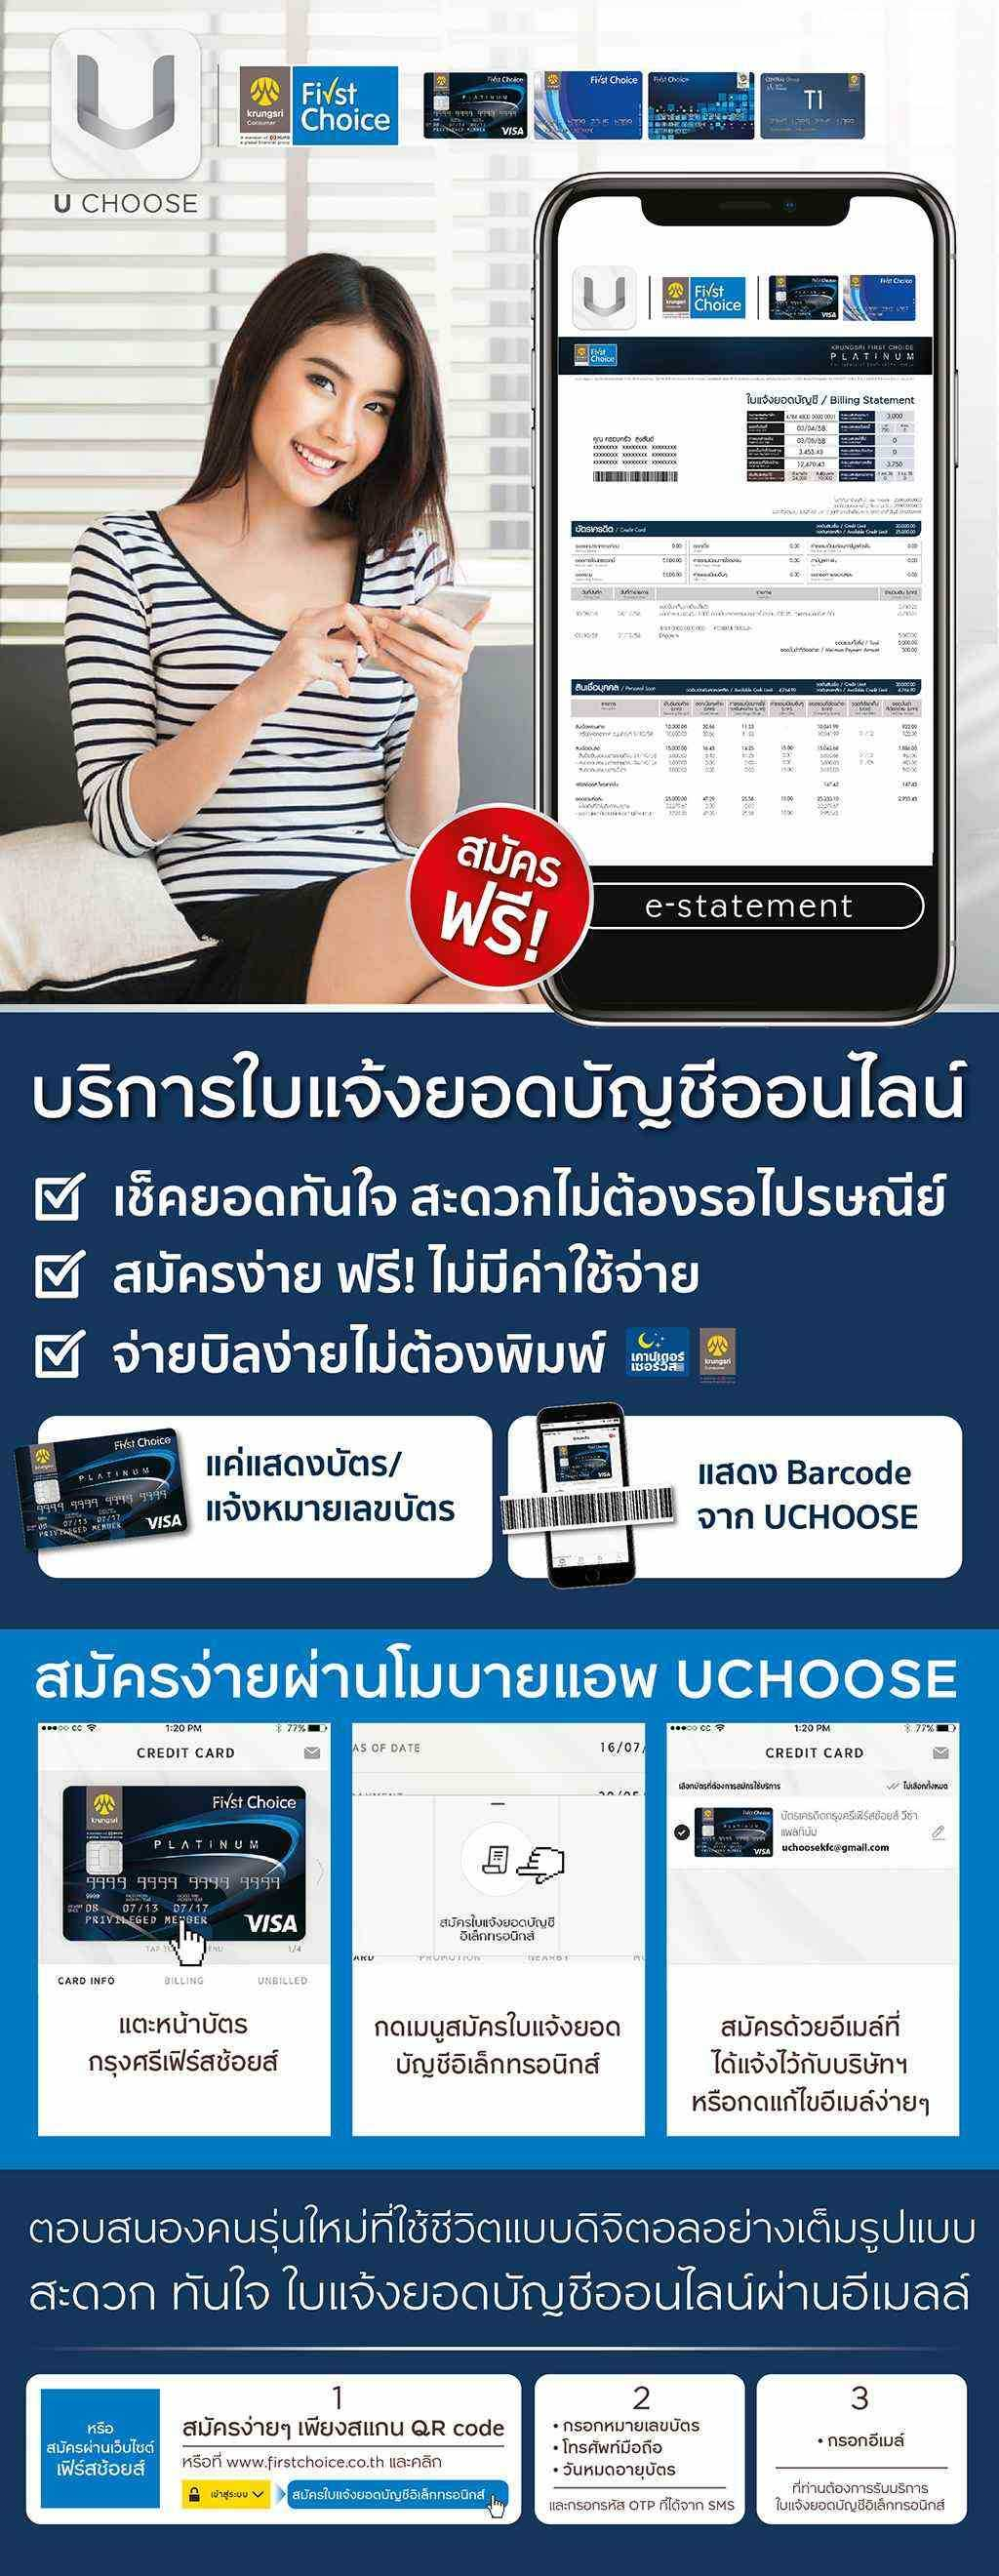 No-Uchoose_-apply-e-billing-0918-02.jpg